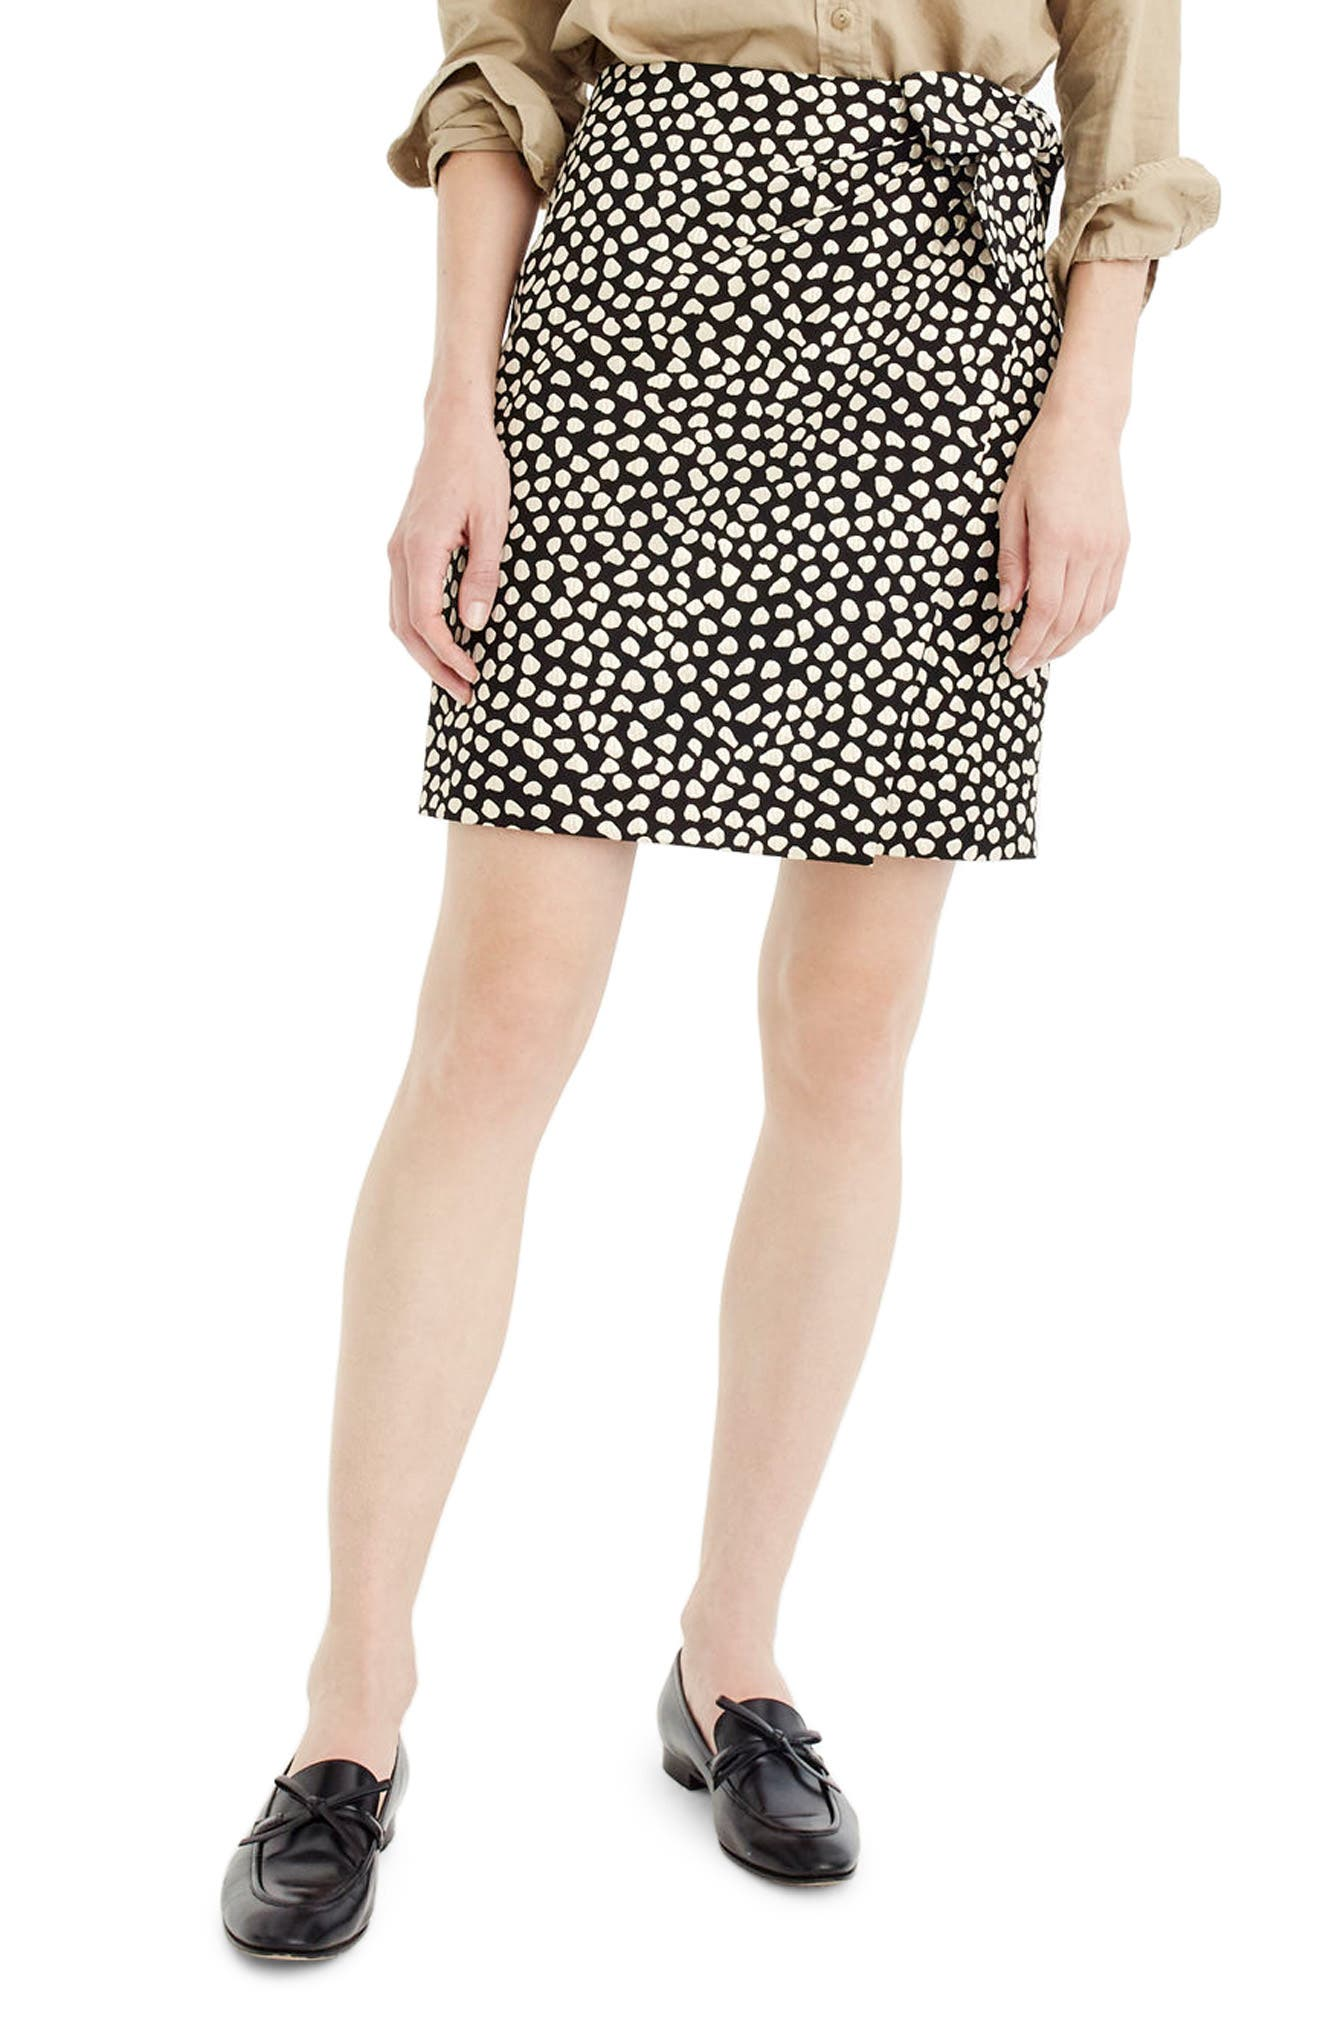 J.Crew Metallic Polka Dot Jacquard Skirt (Regular & Petite)